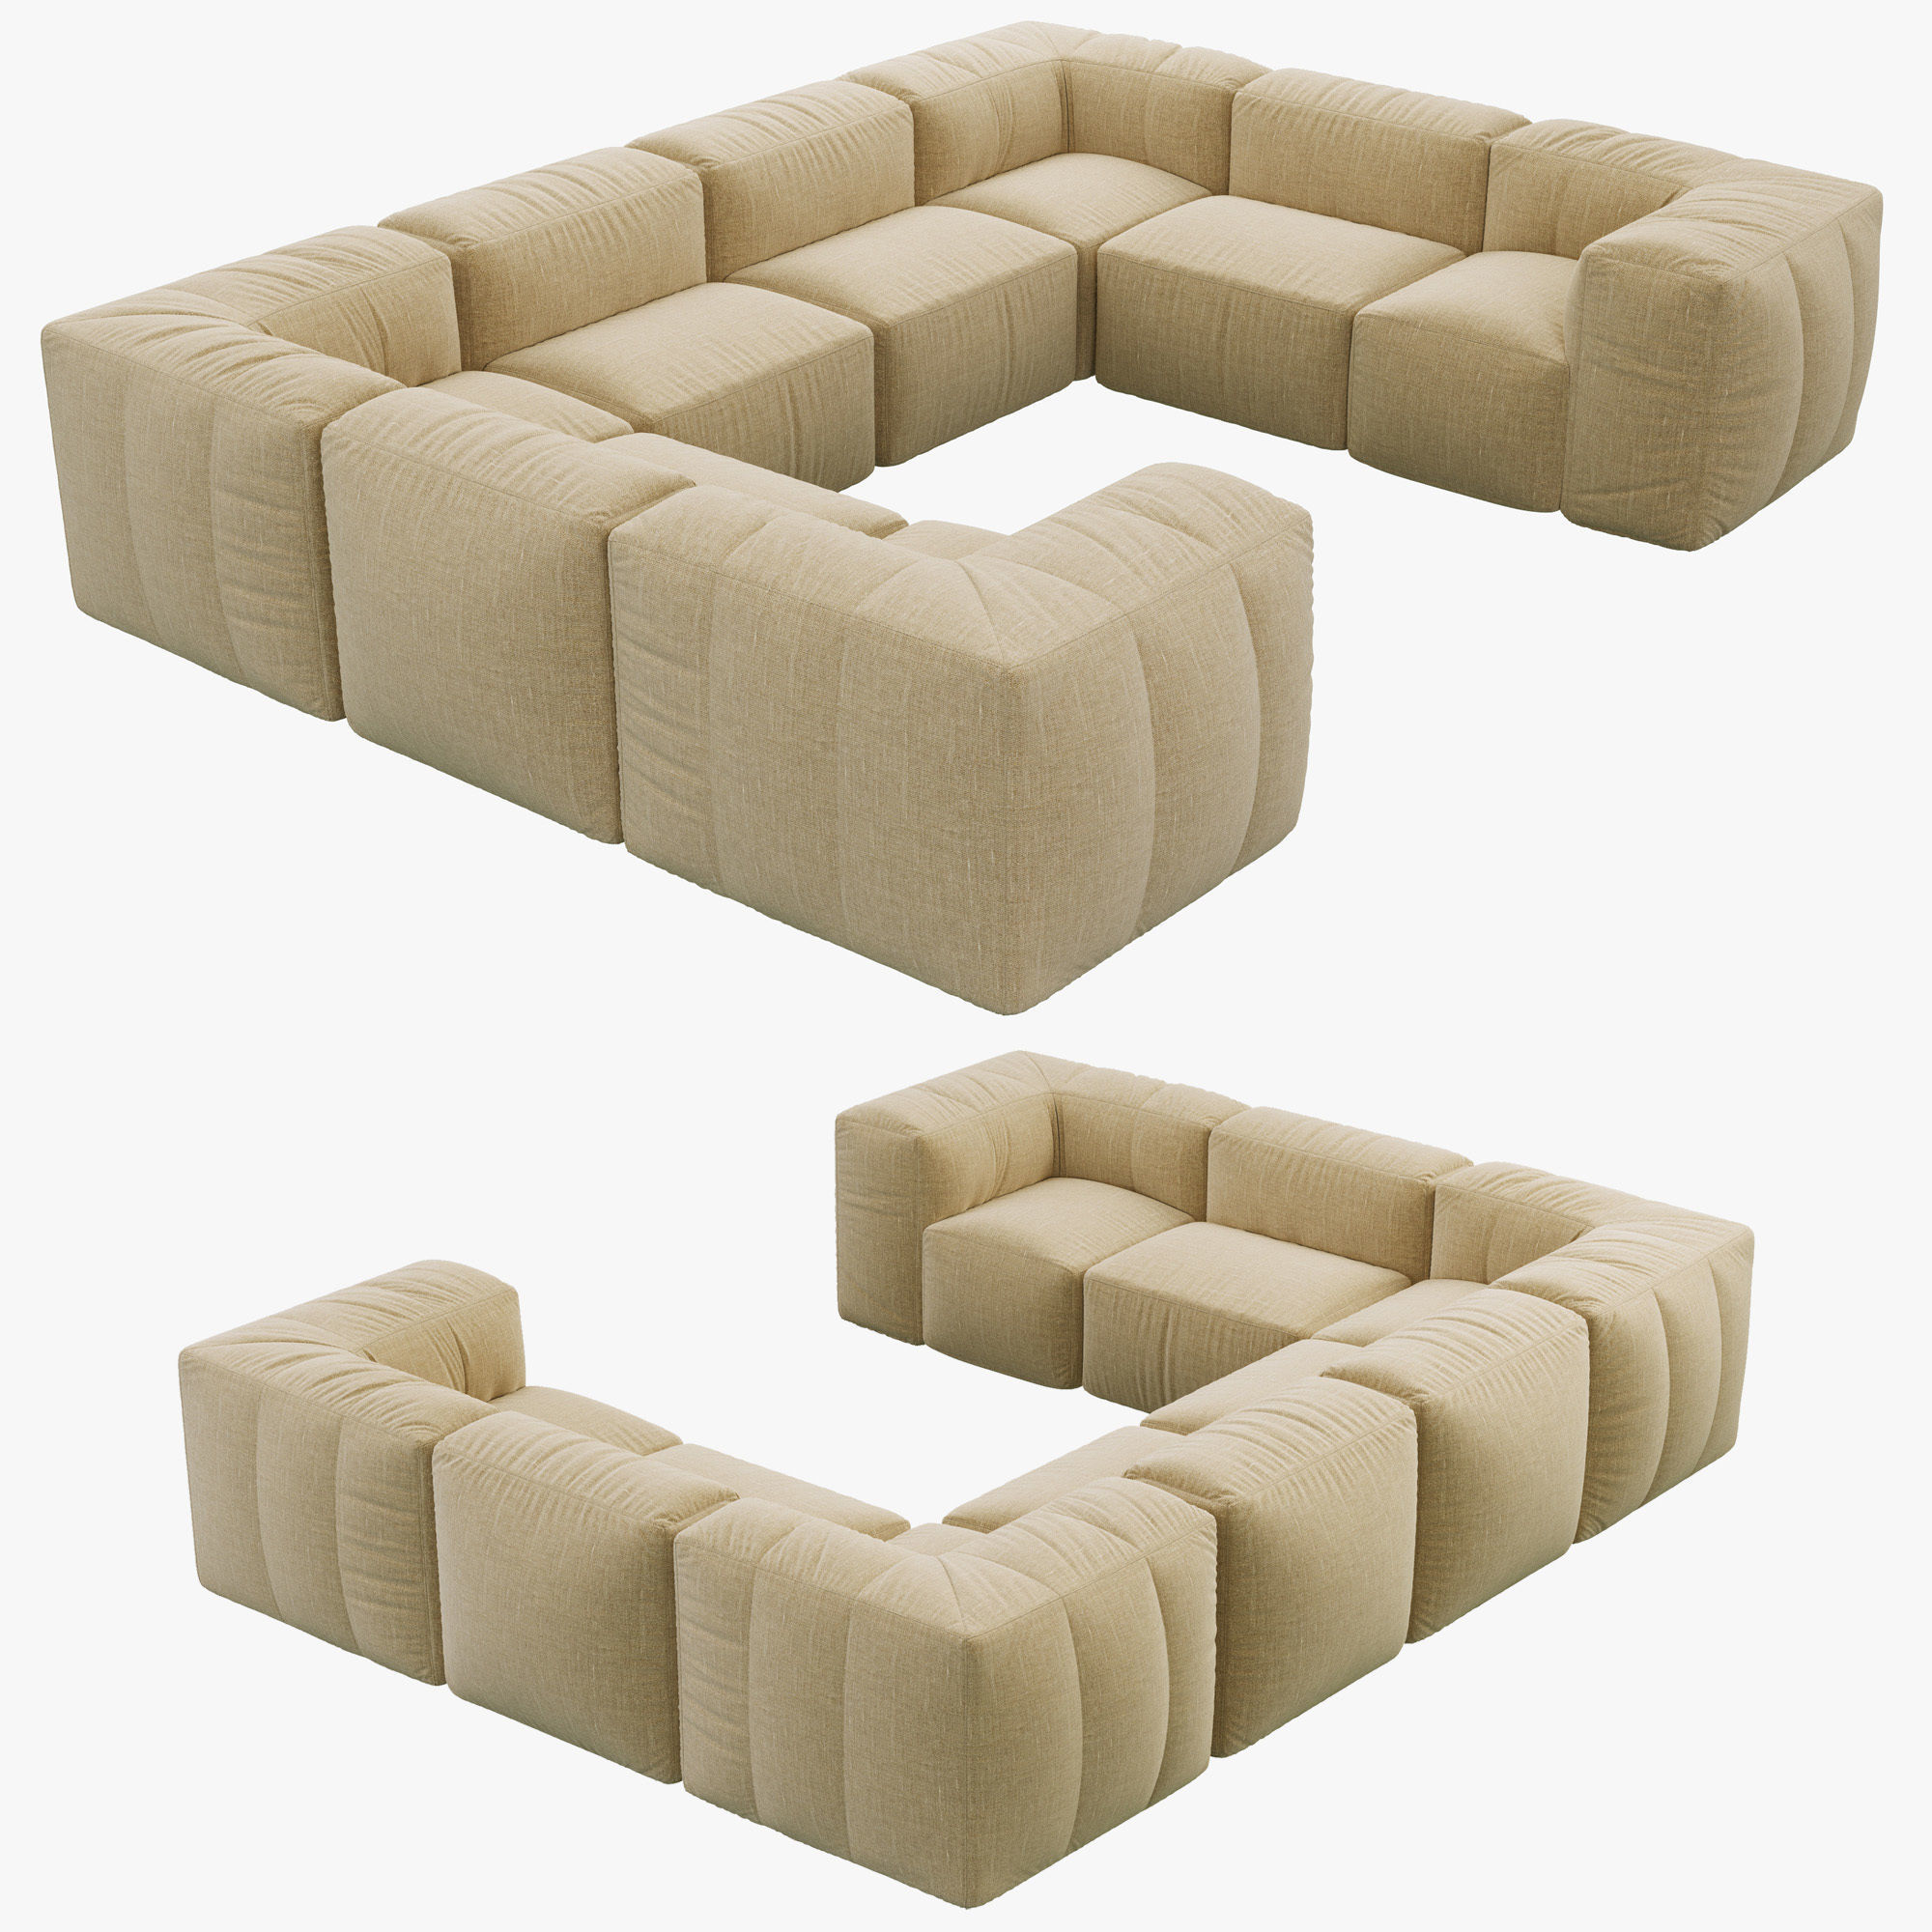 U Sofa Restoration Hardware Preconfigured Fulham Upholstered U Sofa 3d Model